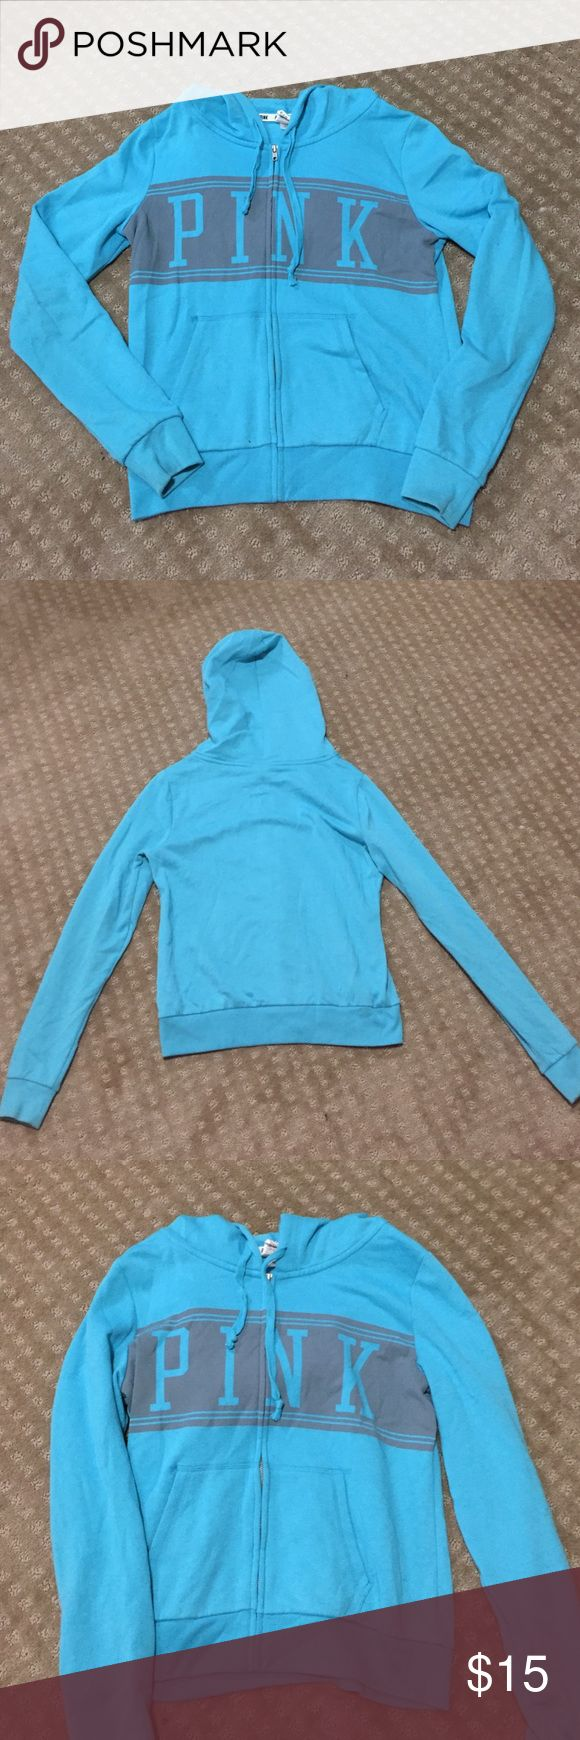 Blue Zip-Up Victoria Secret Pink Sweatshirt It's a light blue zip-up sweatshirt with the word pink across the chest! In great condition. No stains, holes, rips or tears. The zipper works too PINK Victoria's Secret Sweaters